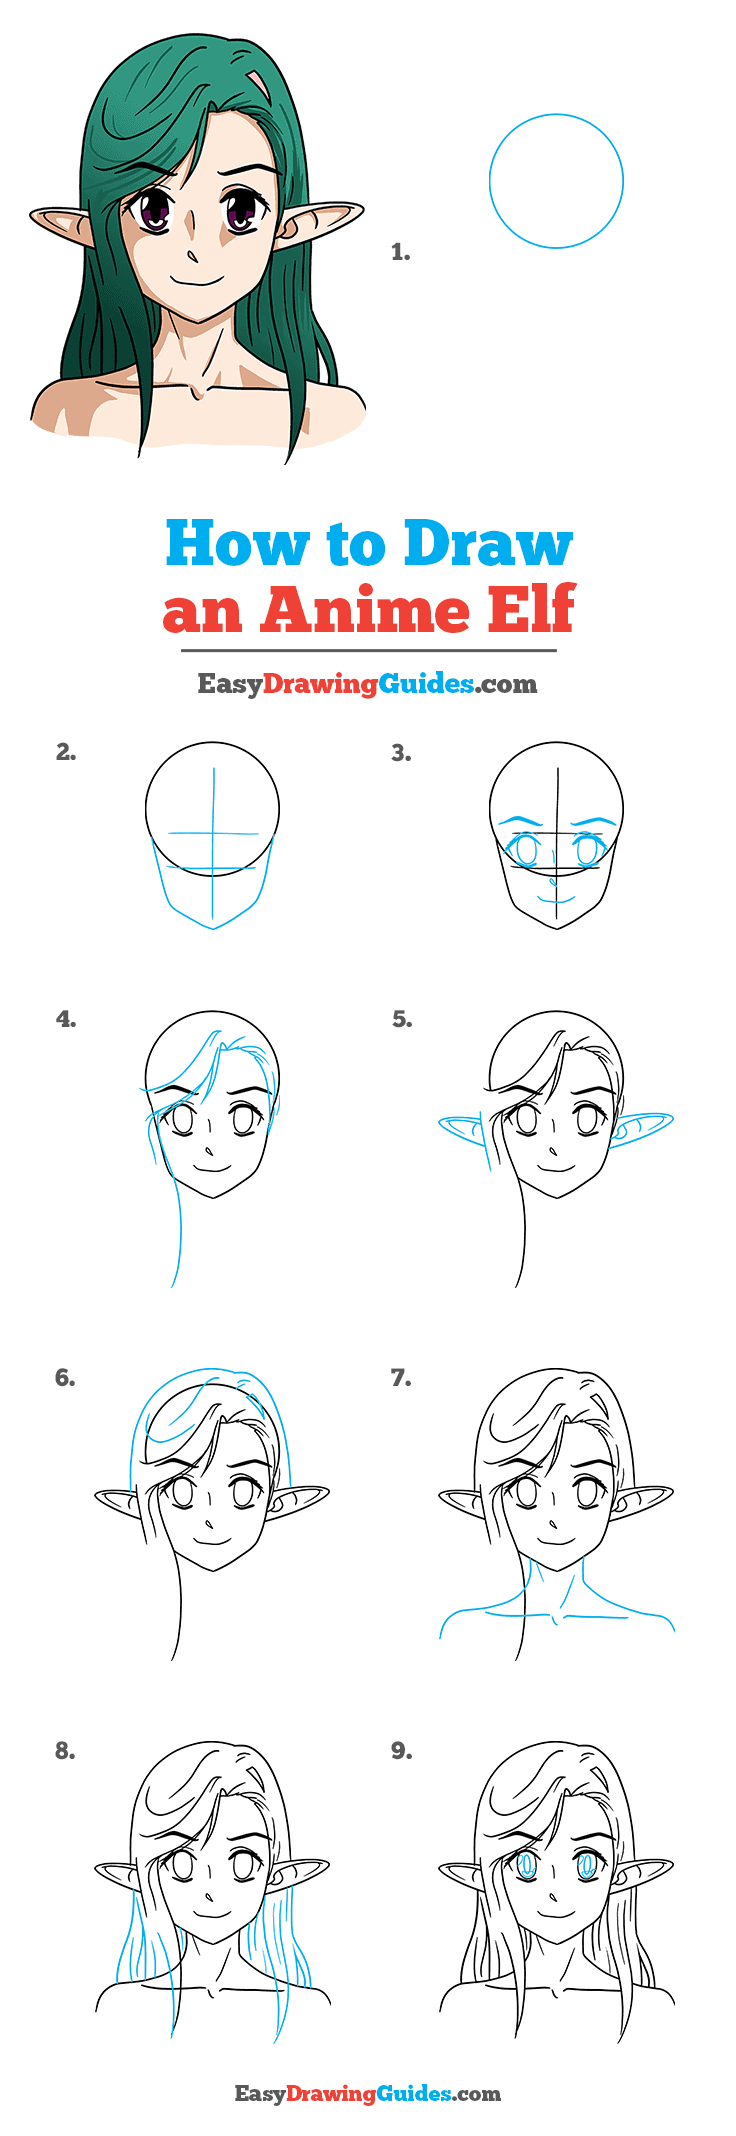 How to Draw Anime Elf